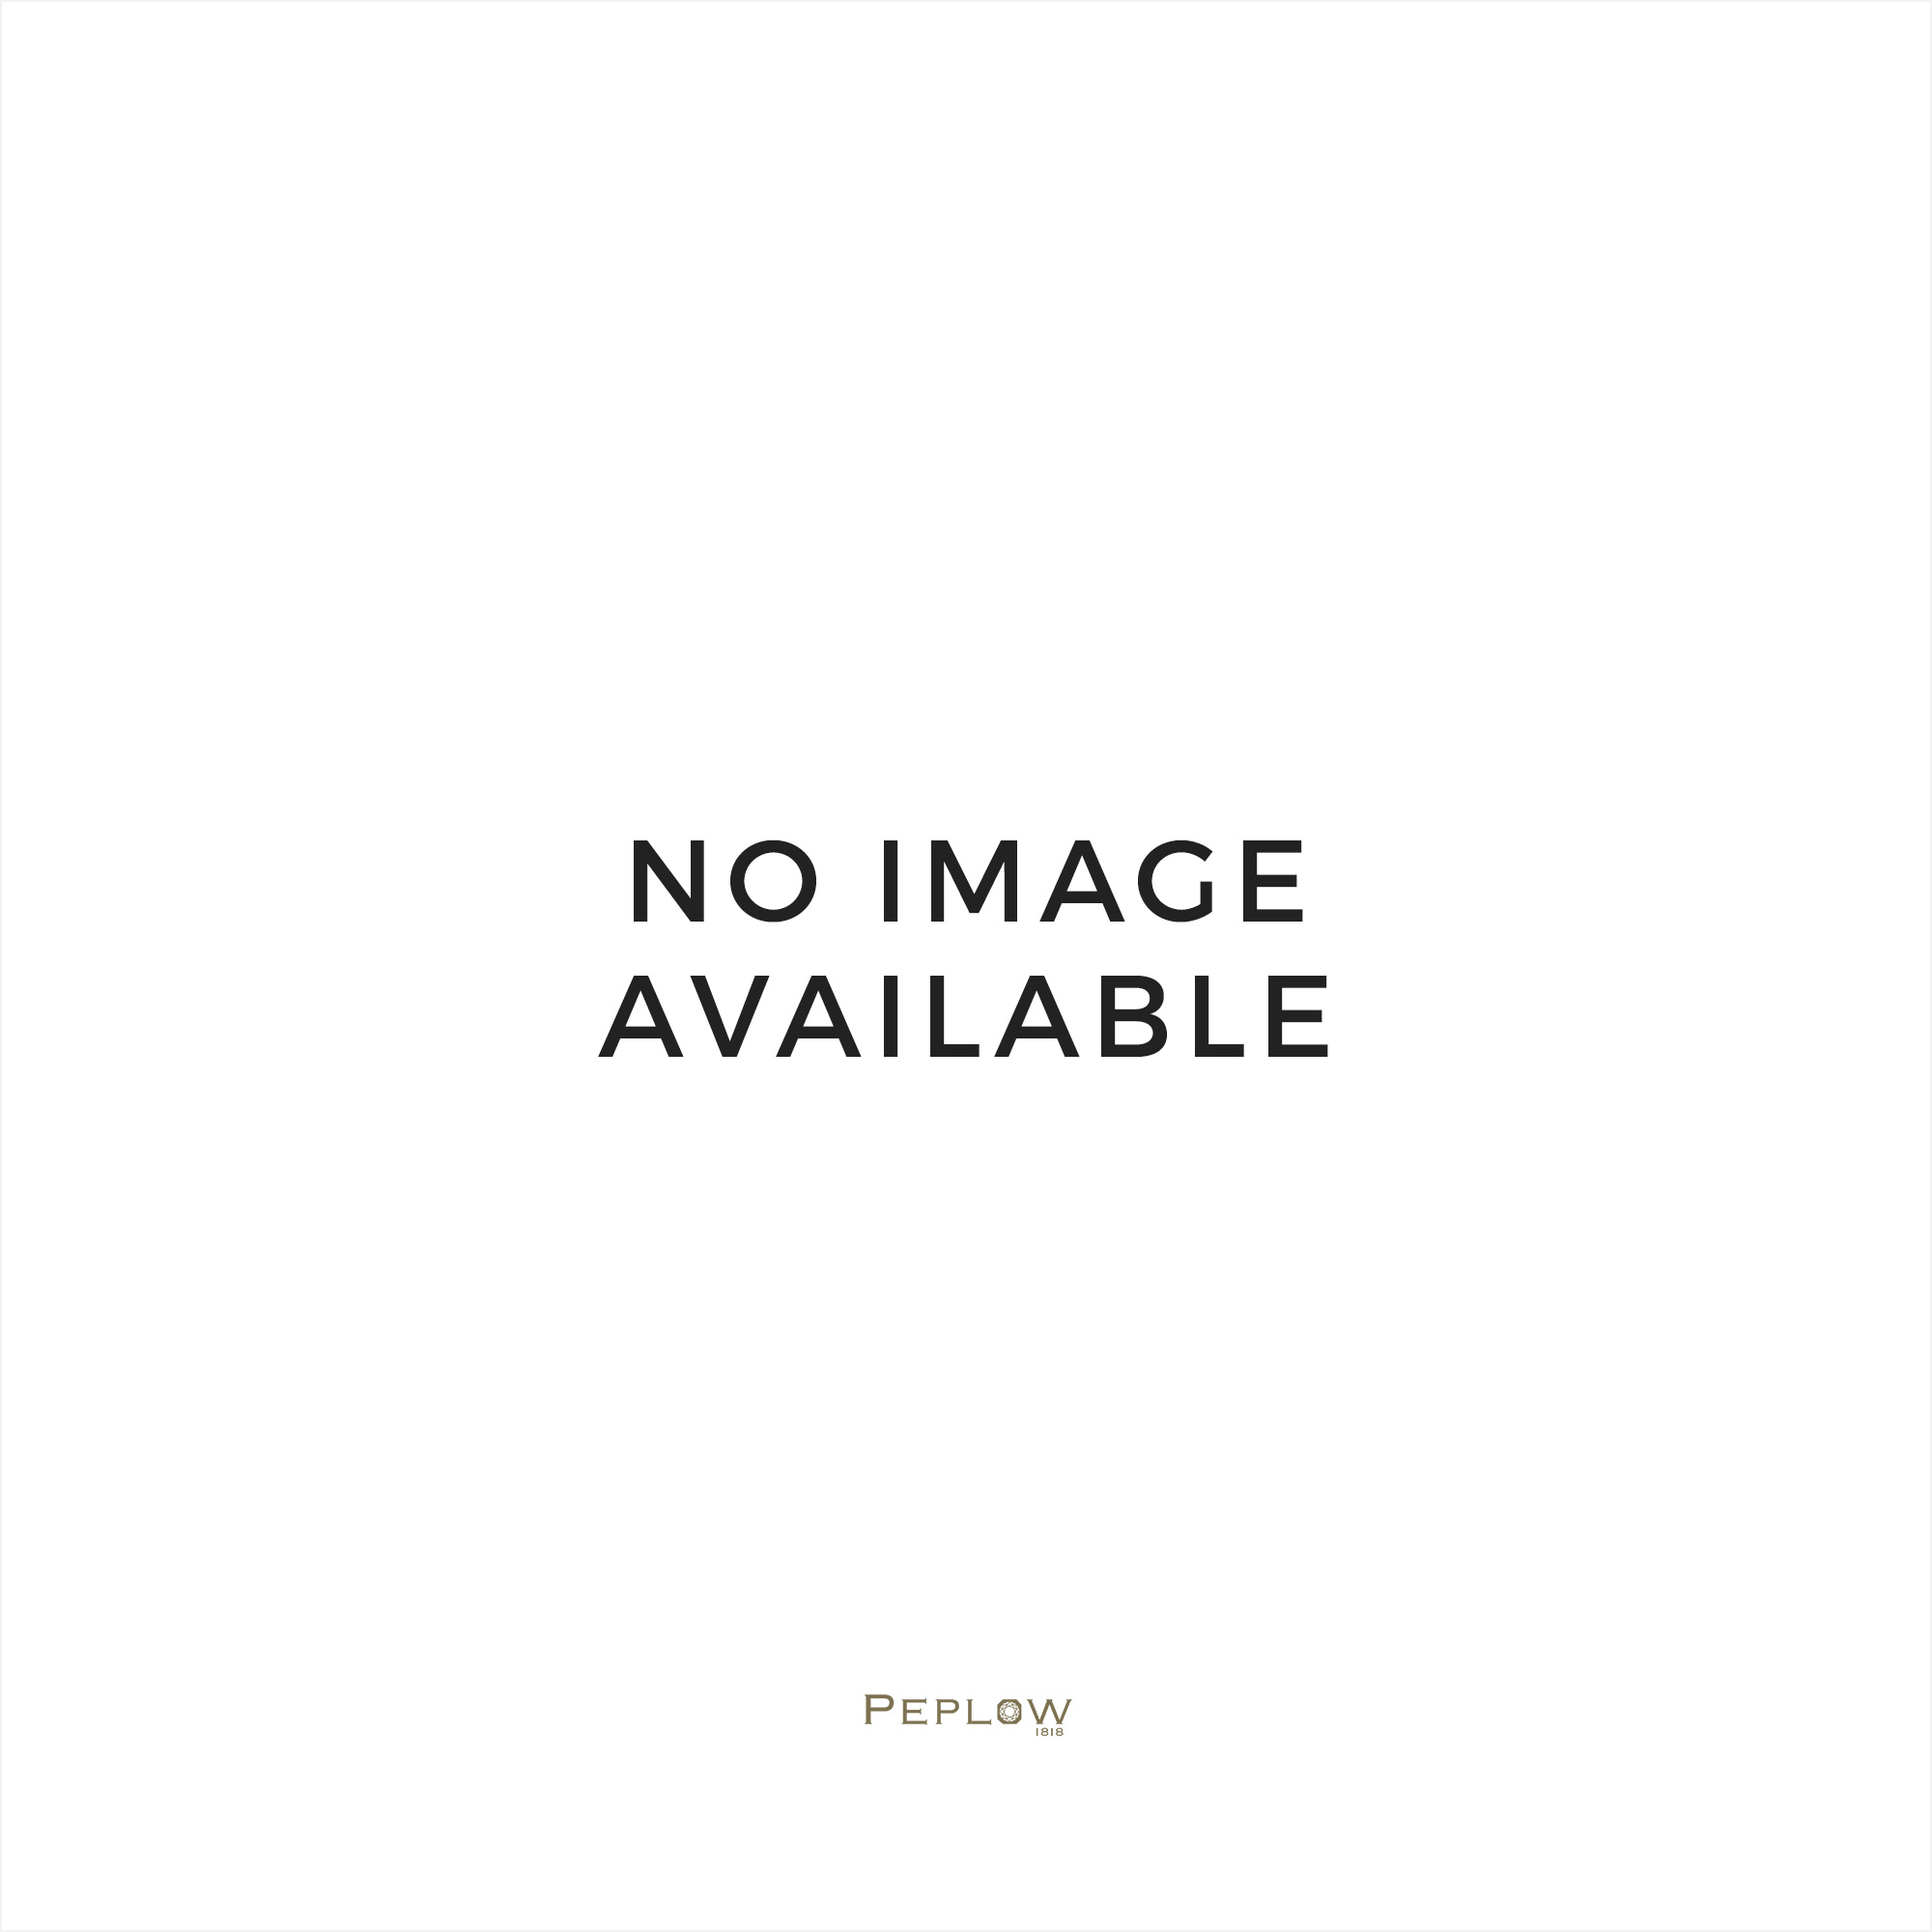 longines mens blue dial hydroconquest watch l3 640 4 96 6 longines watches longines mens blue dial hydroconquest watch